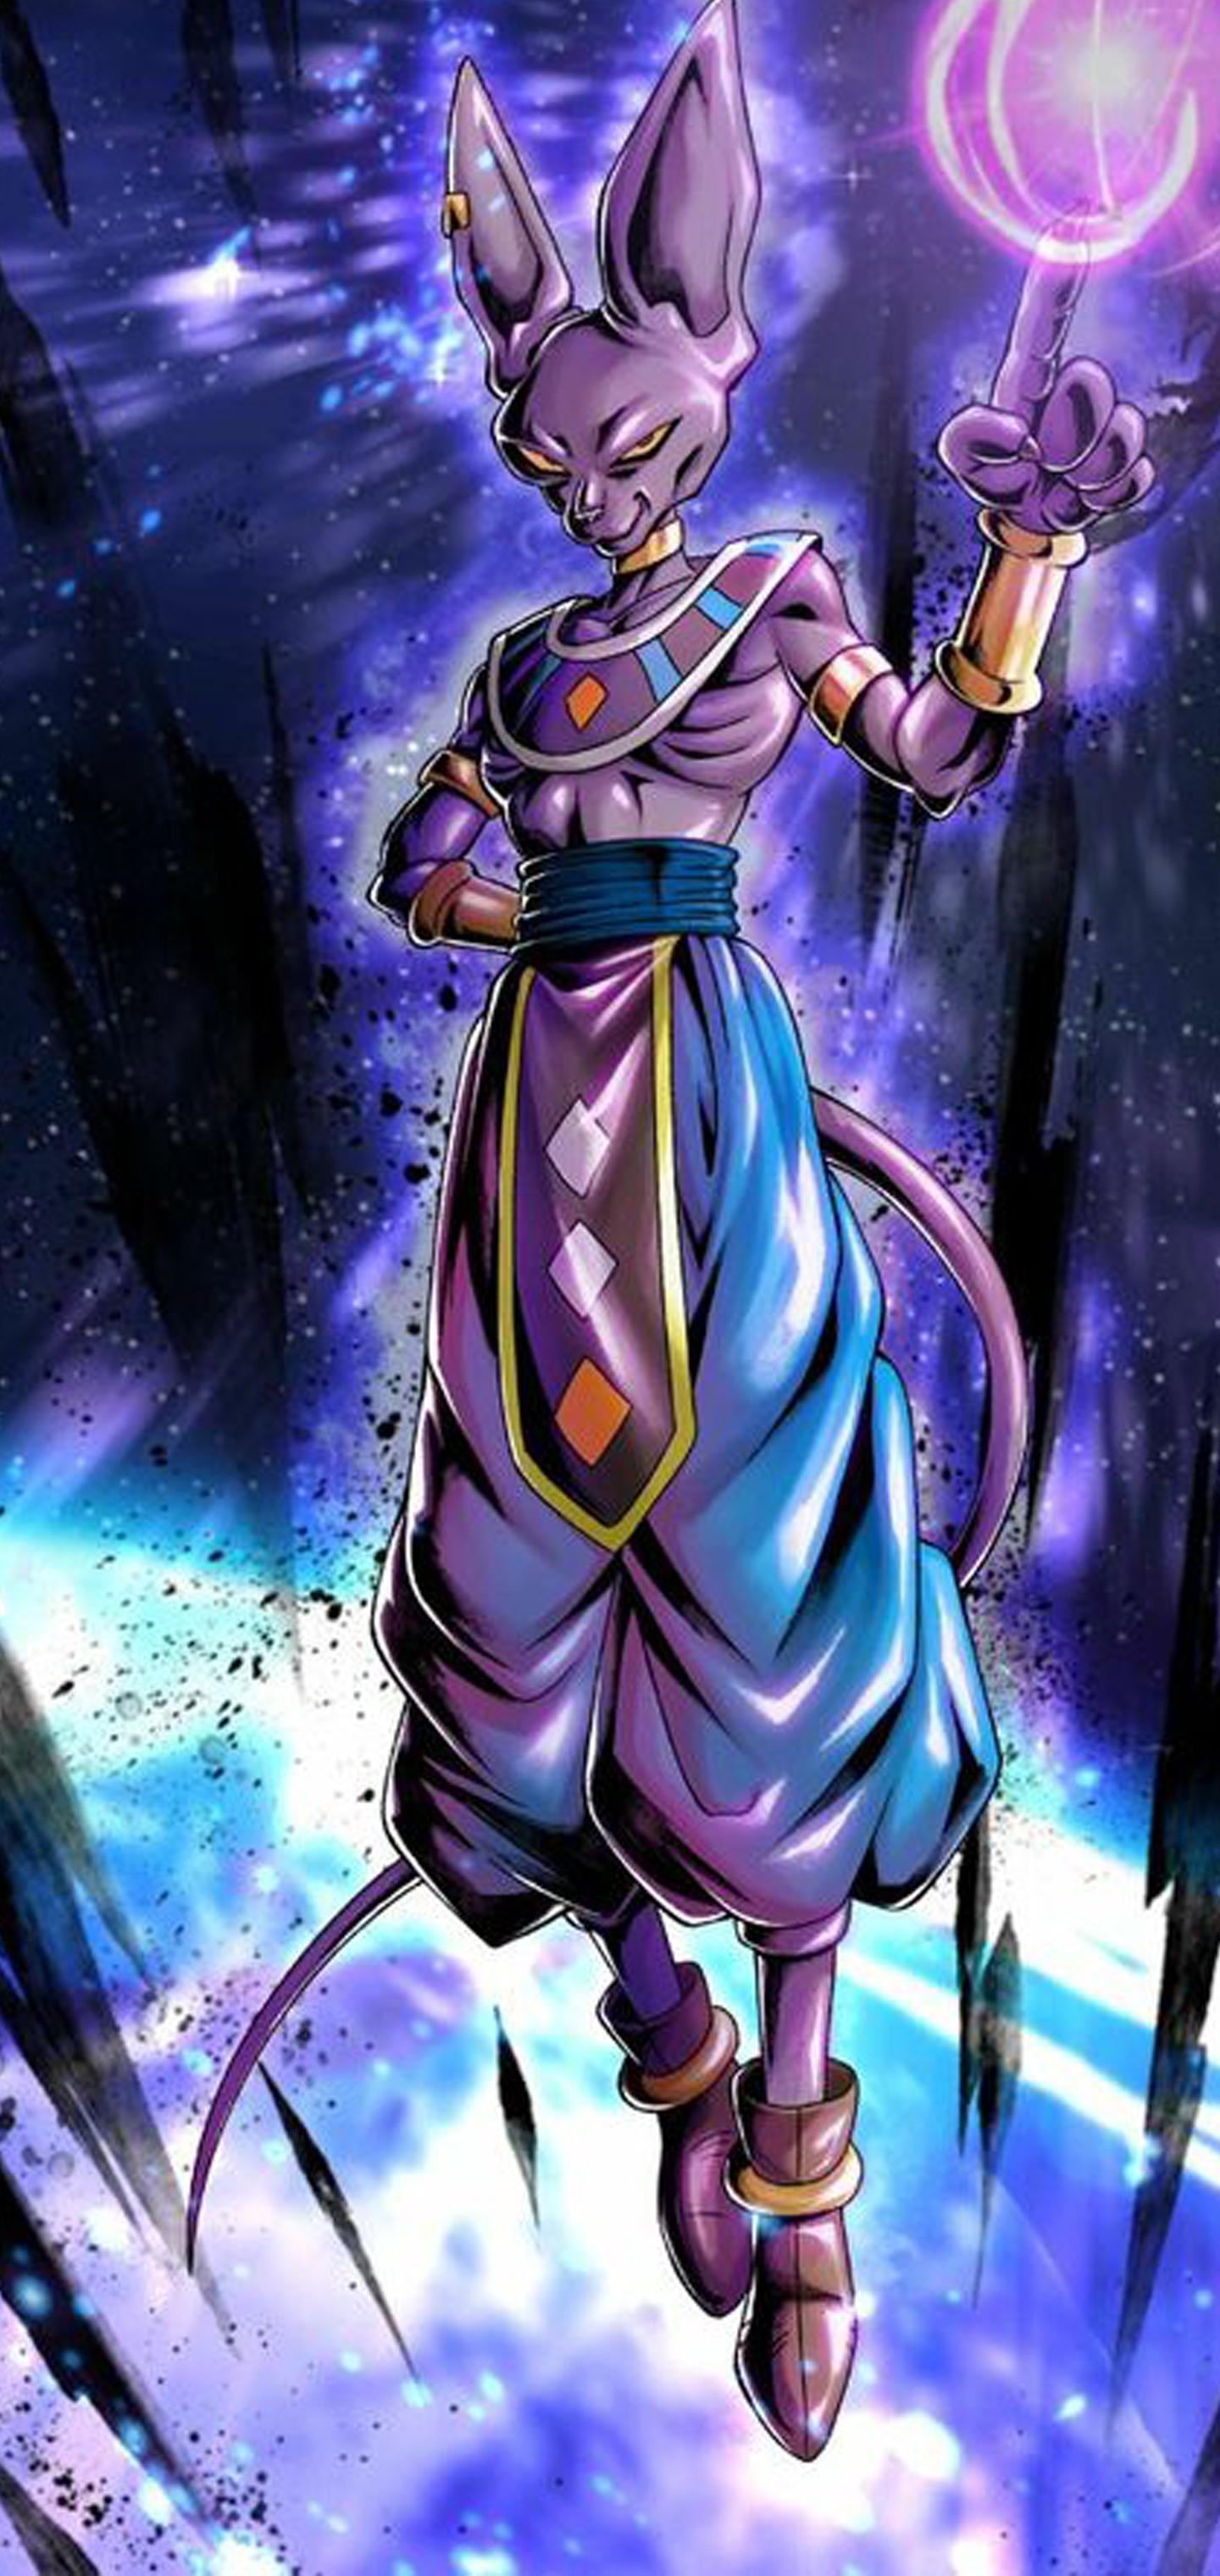 Beerus Anime Wallpapers Wallpaper Cave